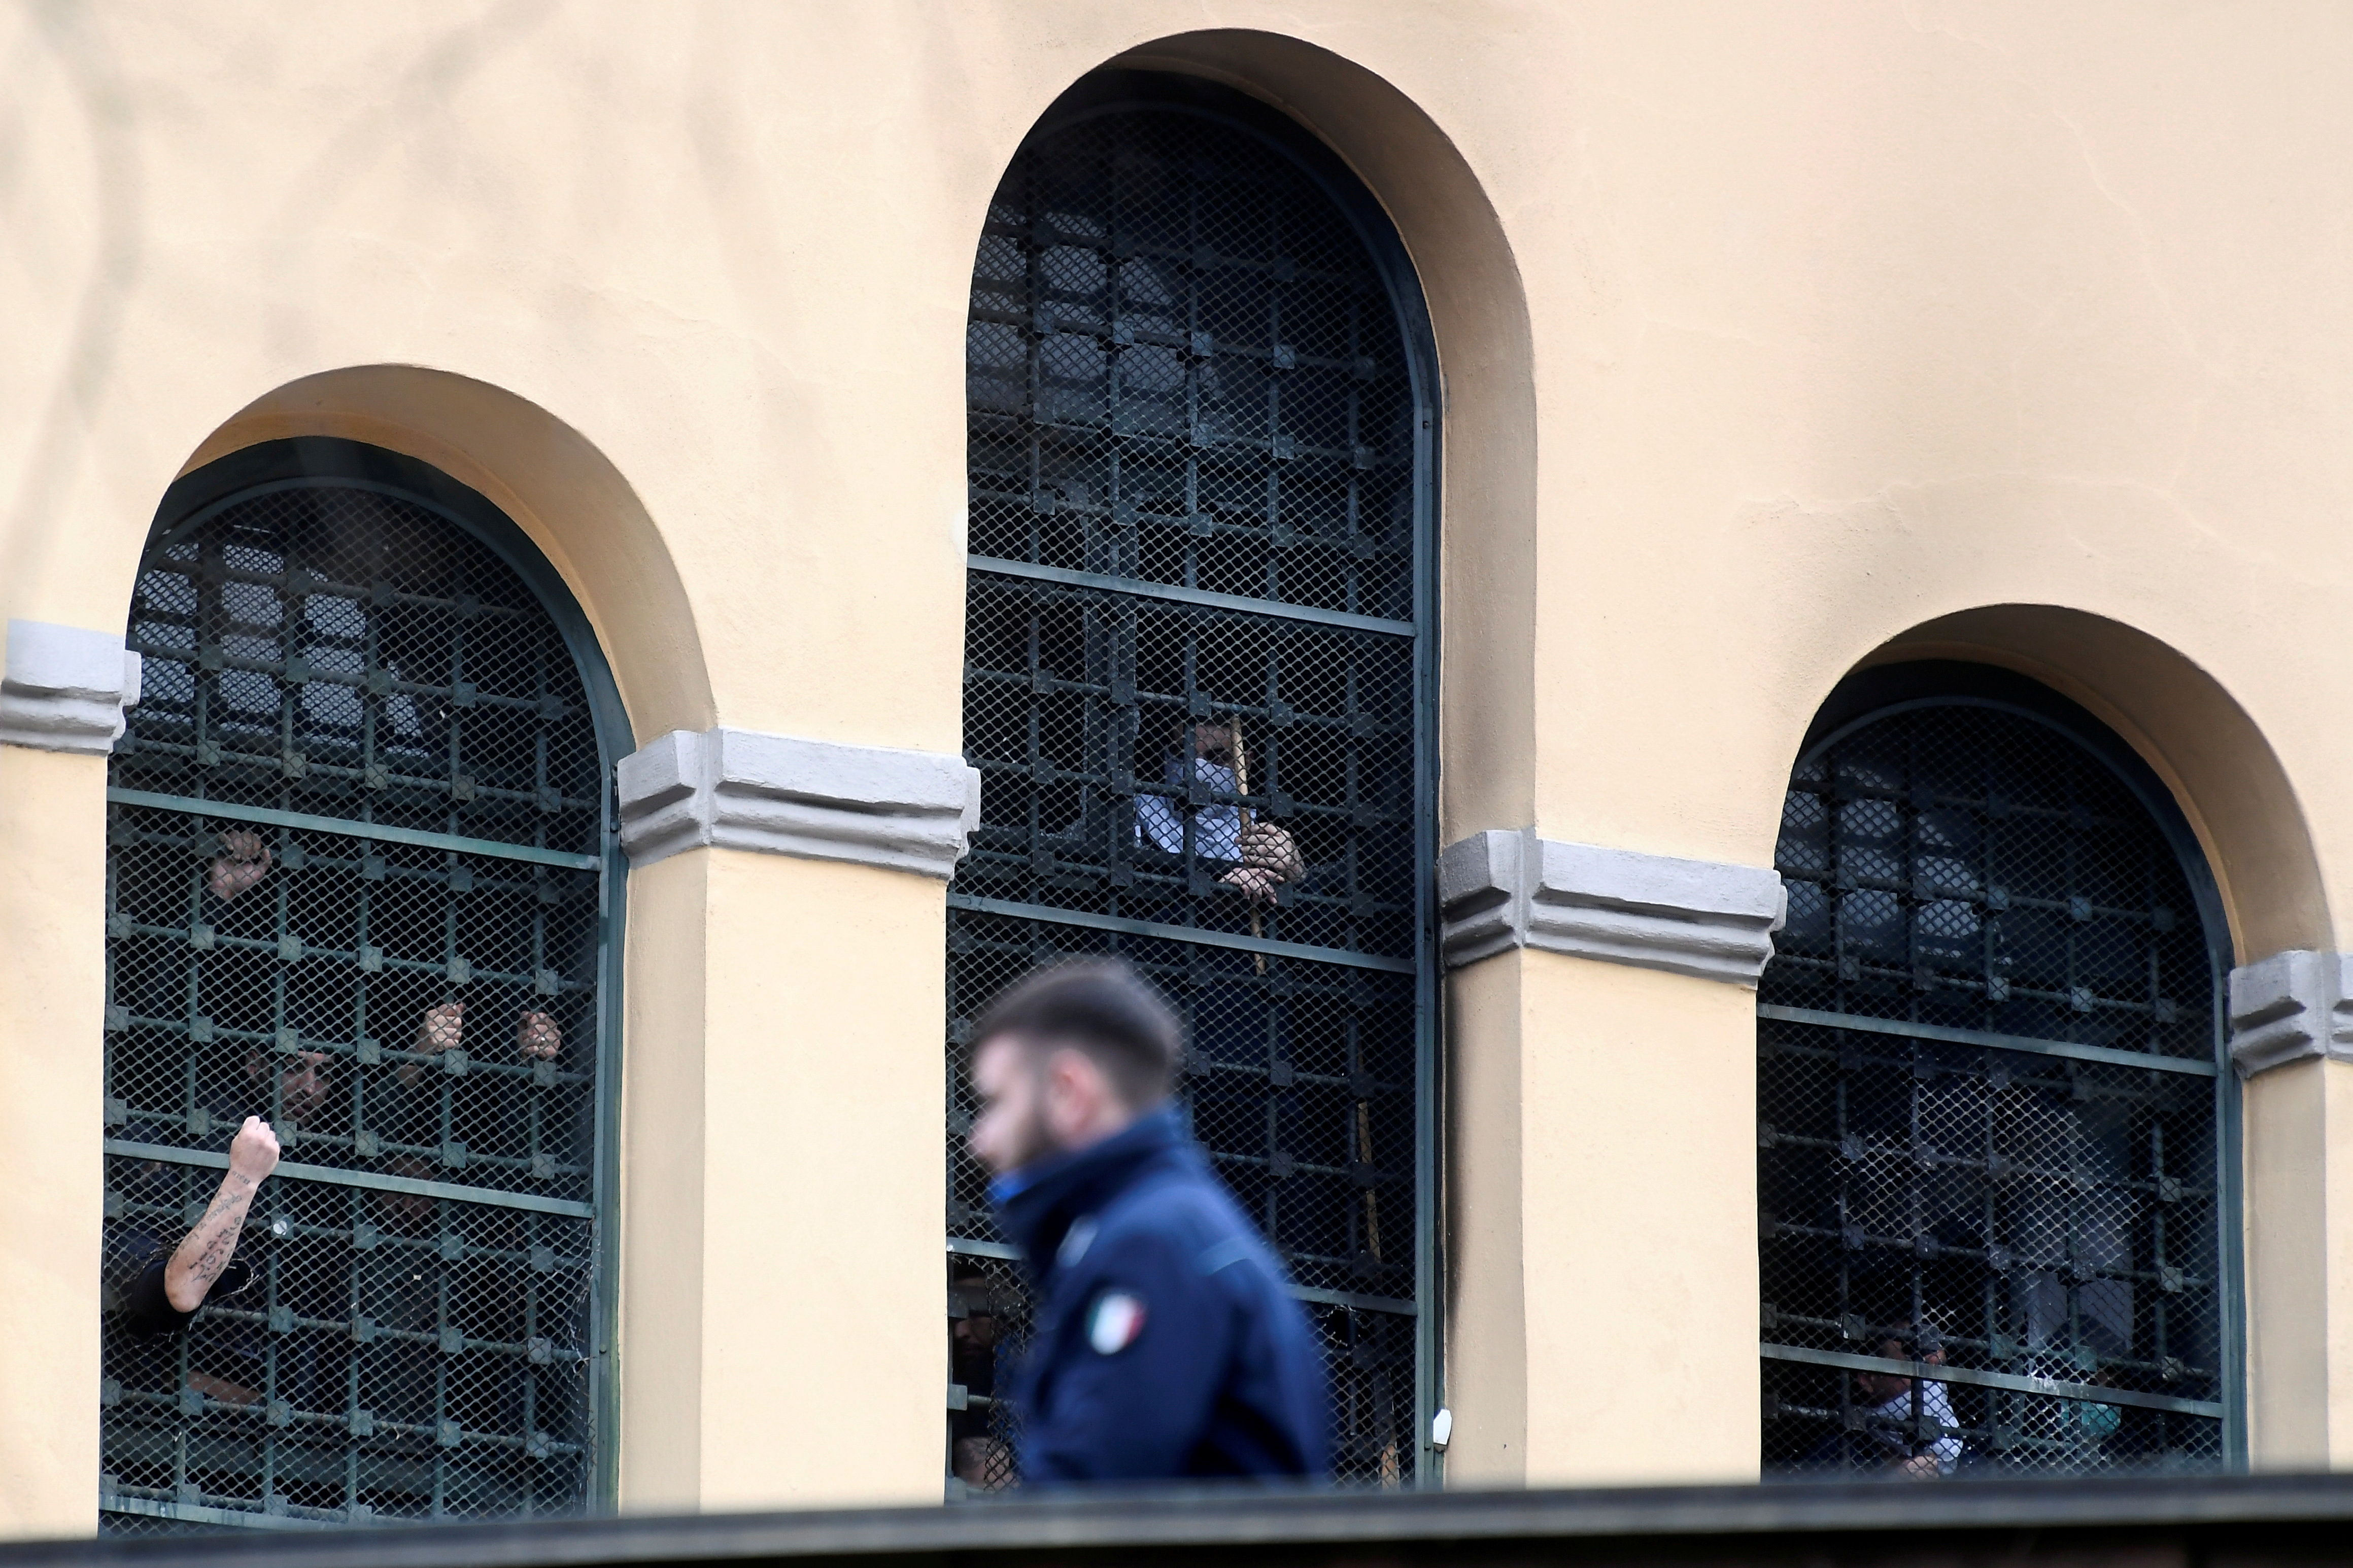 Inmates gather by a barred window during a bout of unrest inside San Vittore Prison in Milan, Italy, March 9, 2020. REUTERS/Flavio Lo Scalzo/File Photo